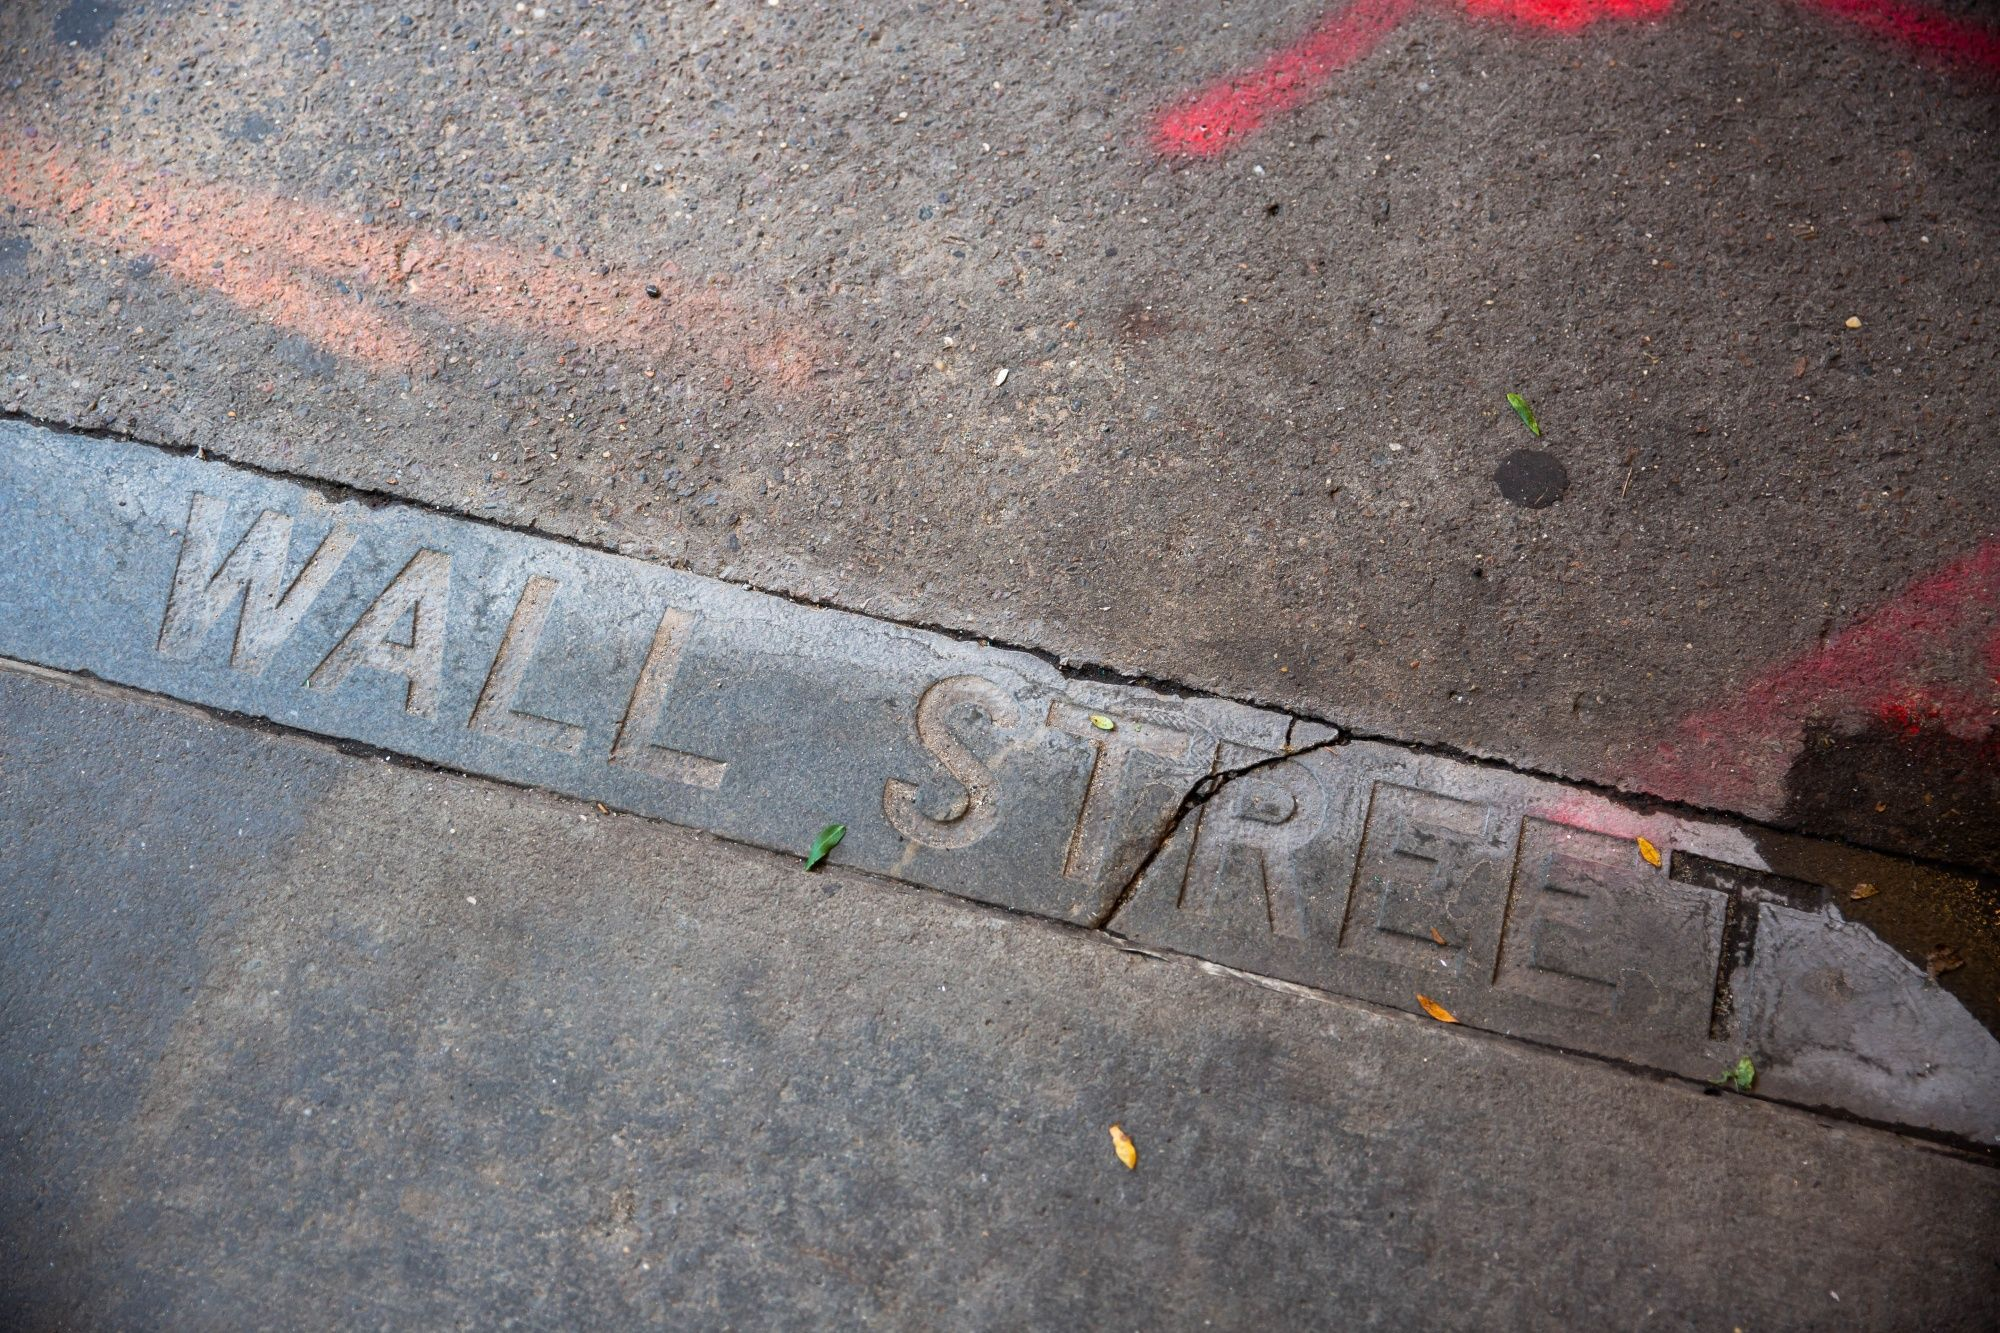 """""""Wall Street"""" etched on the curb near the New York Stock Exchange (NYSE) in New York, U.S., on Wednesday, Sept. 30, 2020. Shares of Palantir Technologies, a data mining company co-founded by technology billionaire Peter Thiel, opened trading today on the New York Stock Exchange at $10 after the company sold shares to investors in a direct offering. Photographer: Michael Nagle/Bloomberg"""